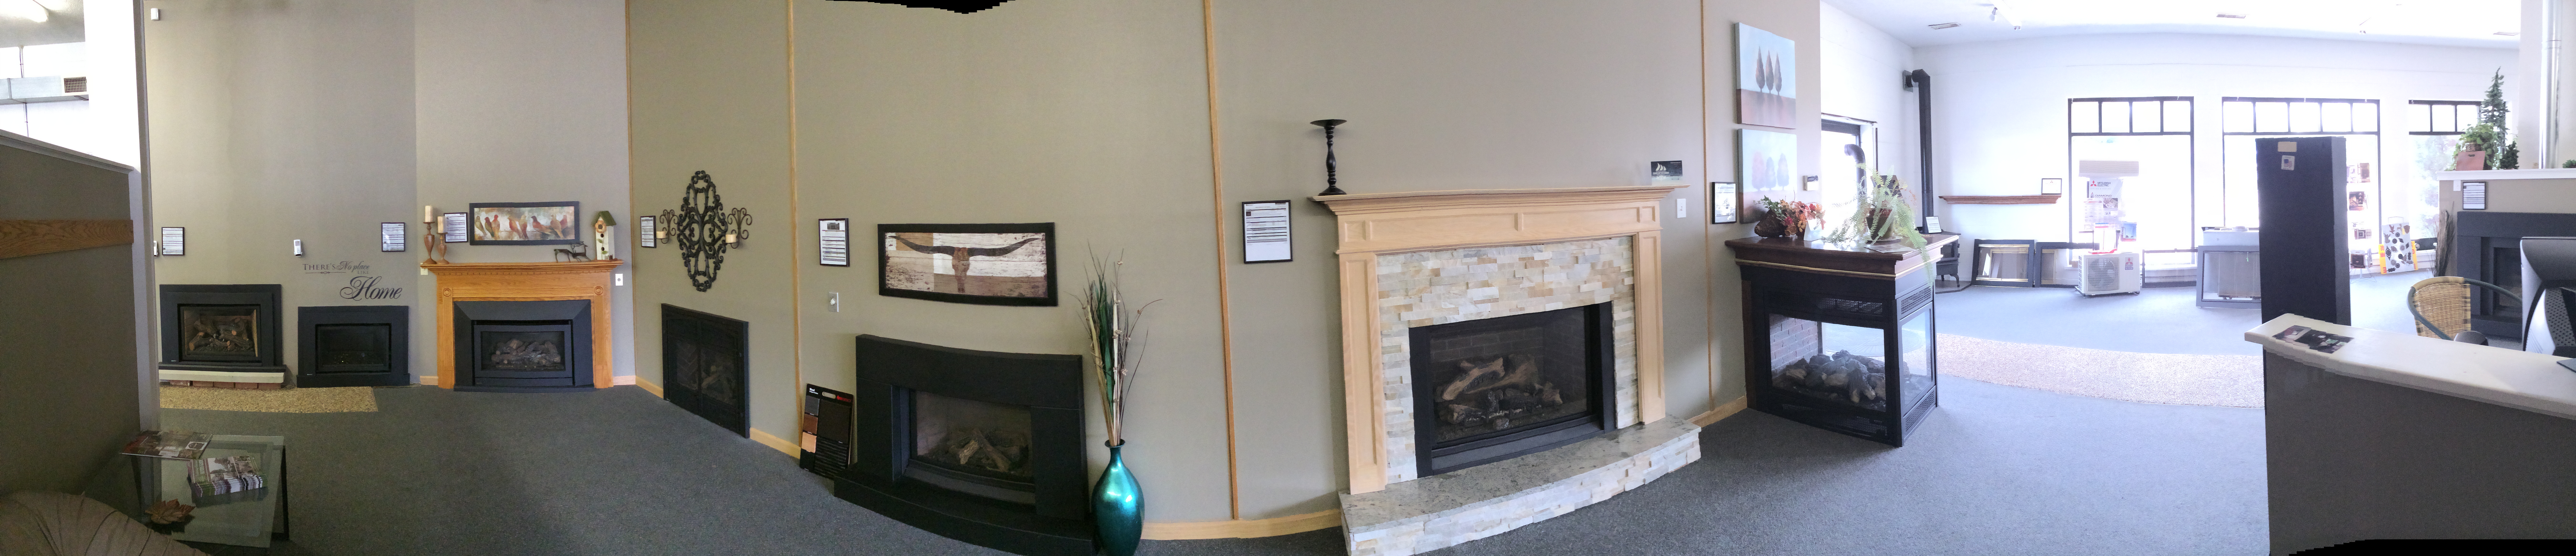 fireplaces ashland comfort control